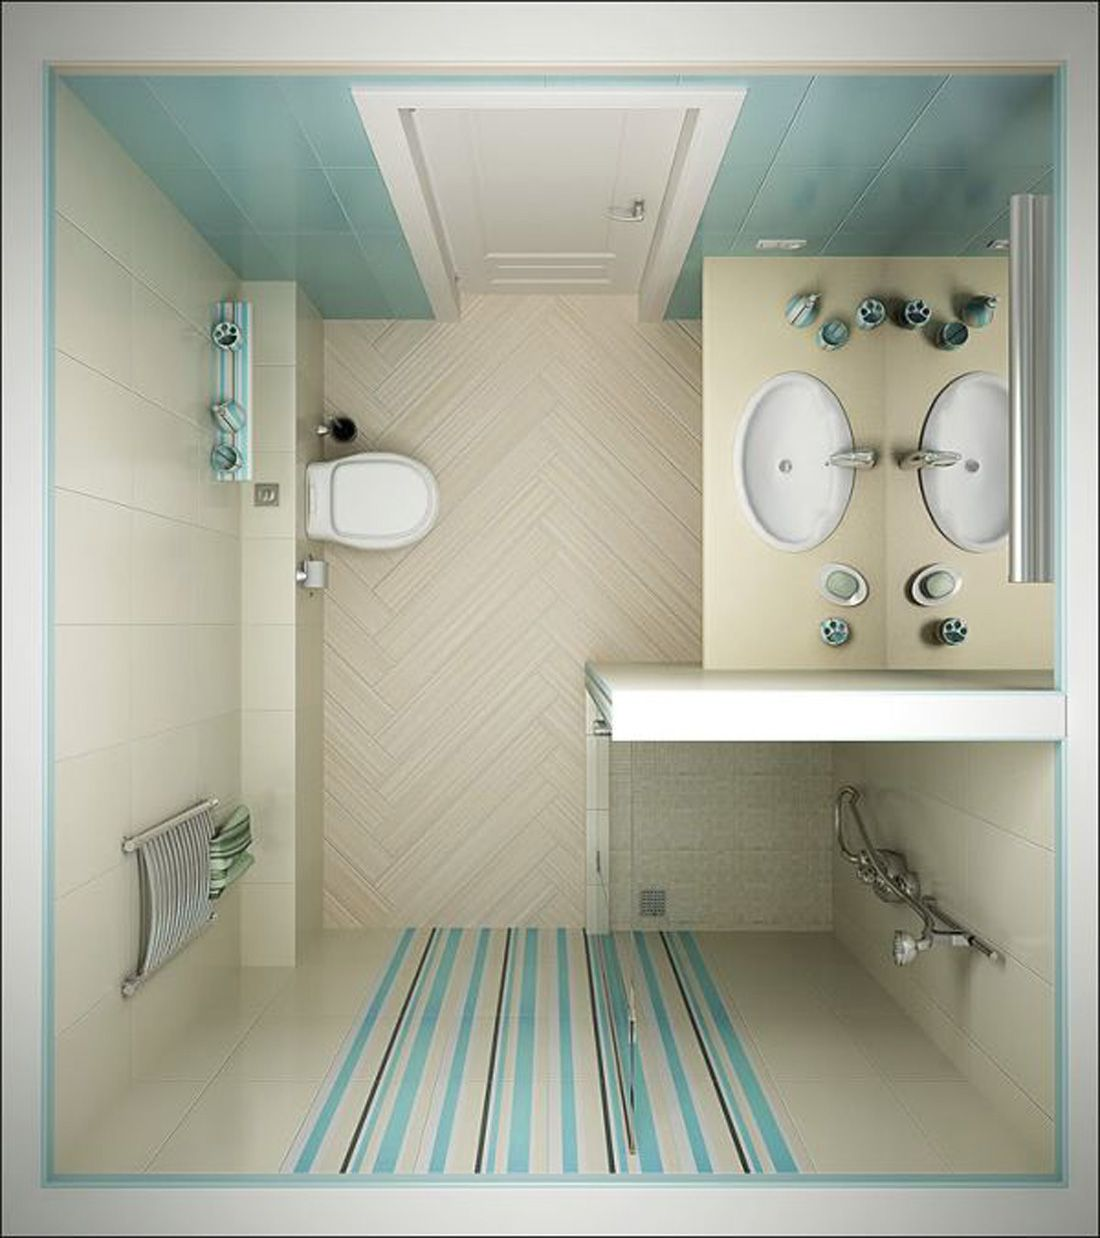 Very Small Bathroom Ideas With Shower Only small bathroom ideas with shower only - Google Search